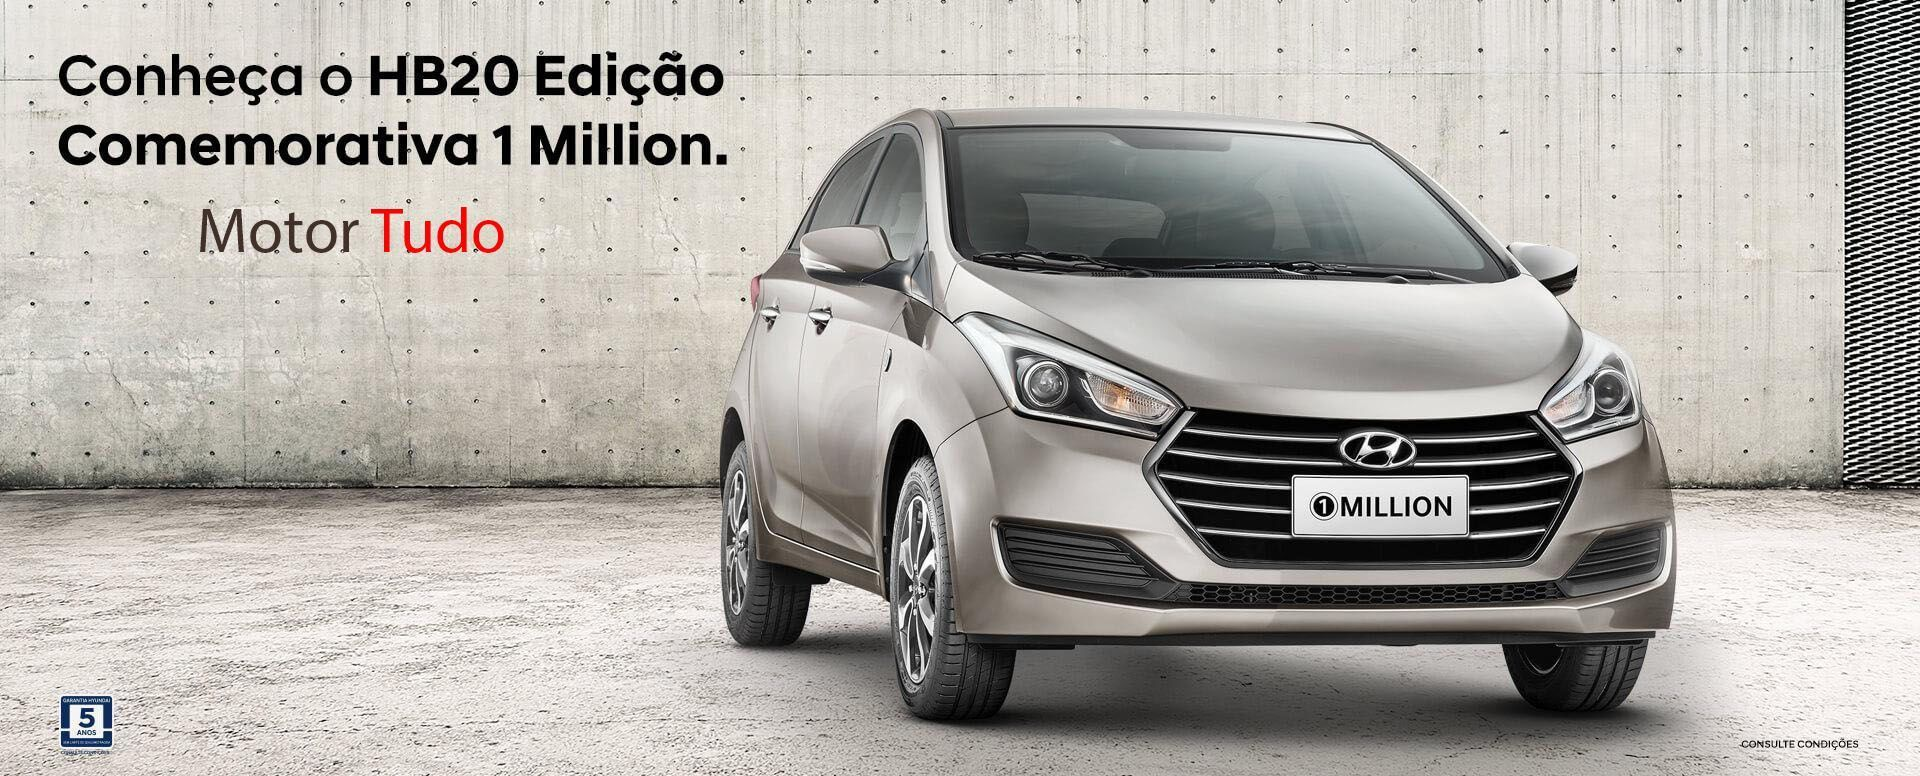 Hyundai HB20 Million 1.6 AT 2019 Motor Tudo (5)